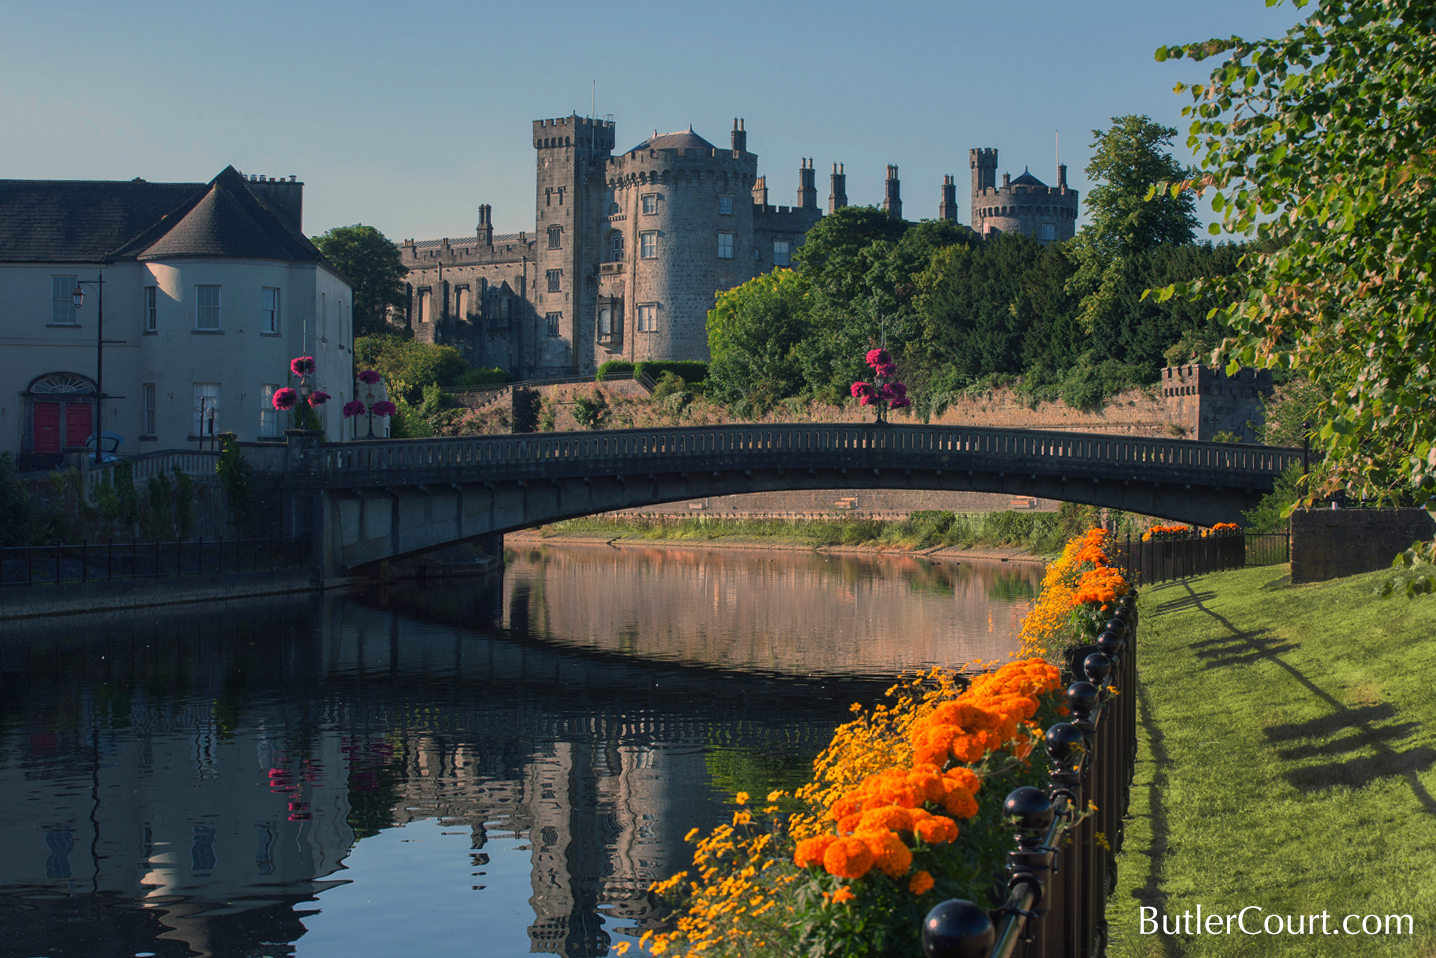 kilkenny castle, ireland, butler court guest accommodation, rick steves recommended, downtown, central, city centre, accommodation, lodgings,